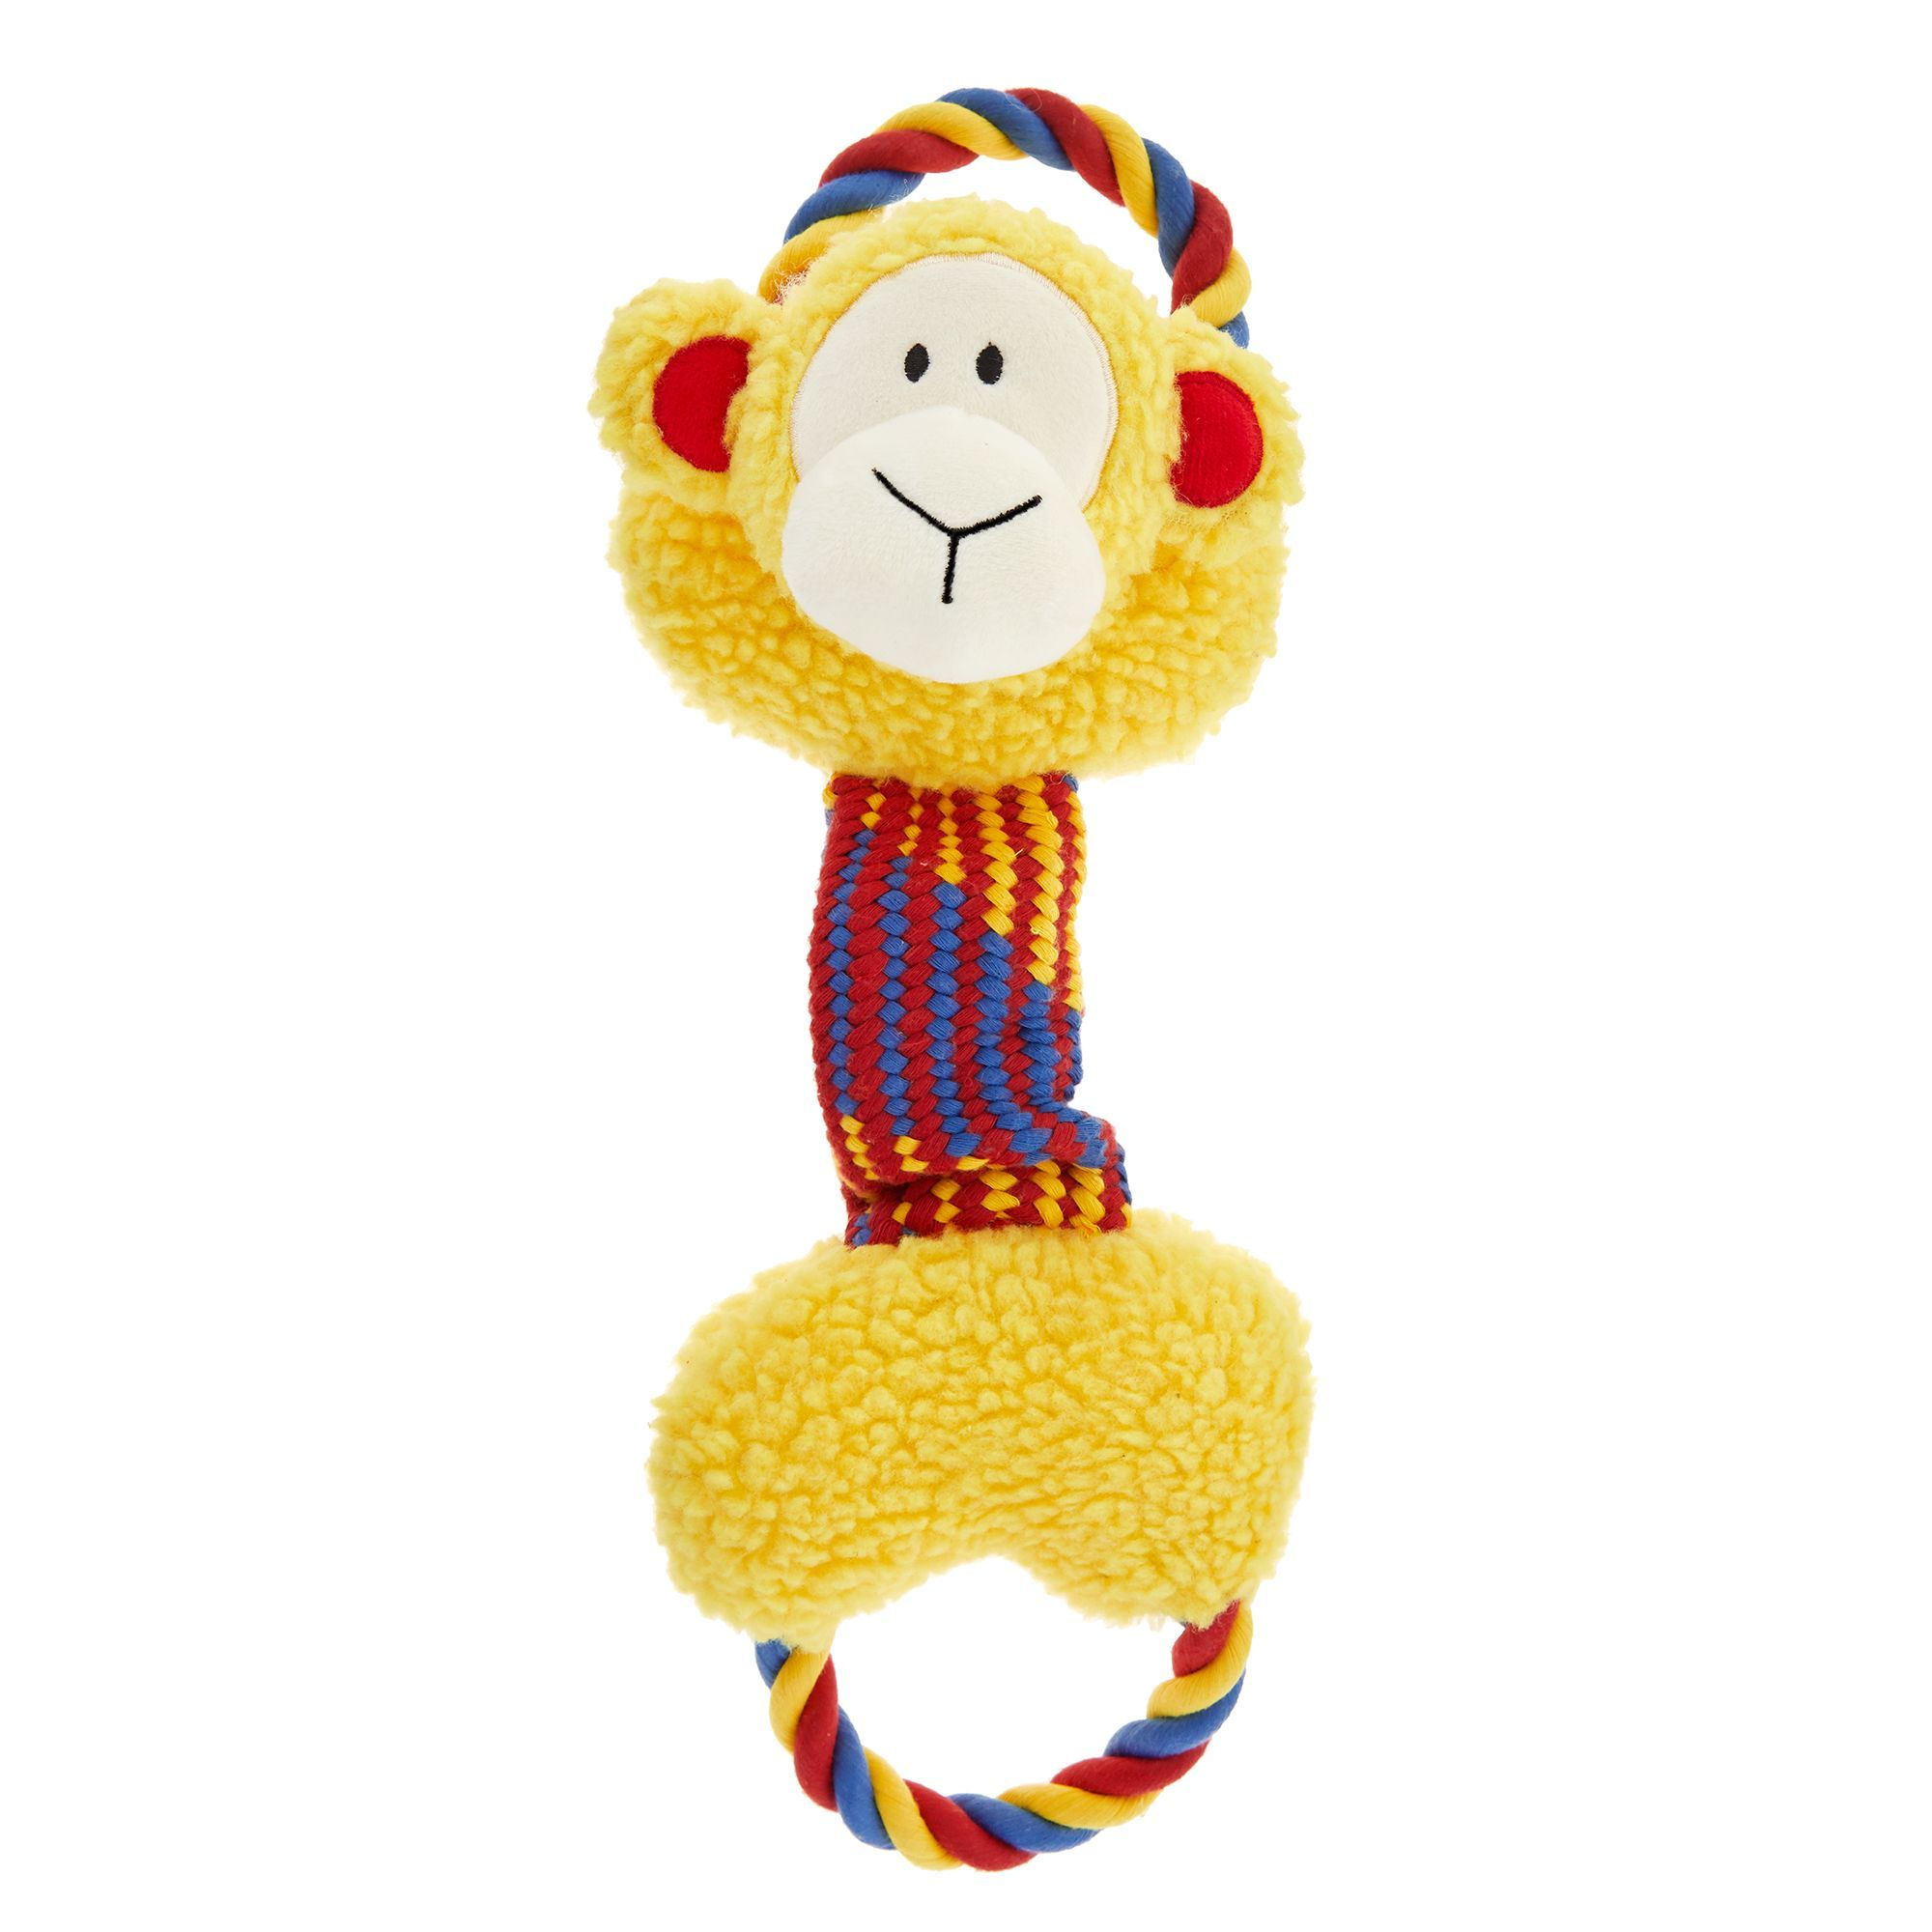 Hem Boo Monty Monkey Rope Arms Dog Toy 26cm Hem Boo Rope Arms Are